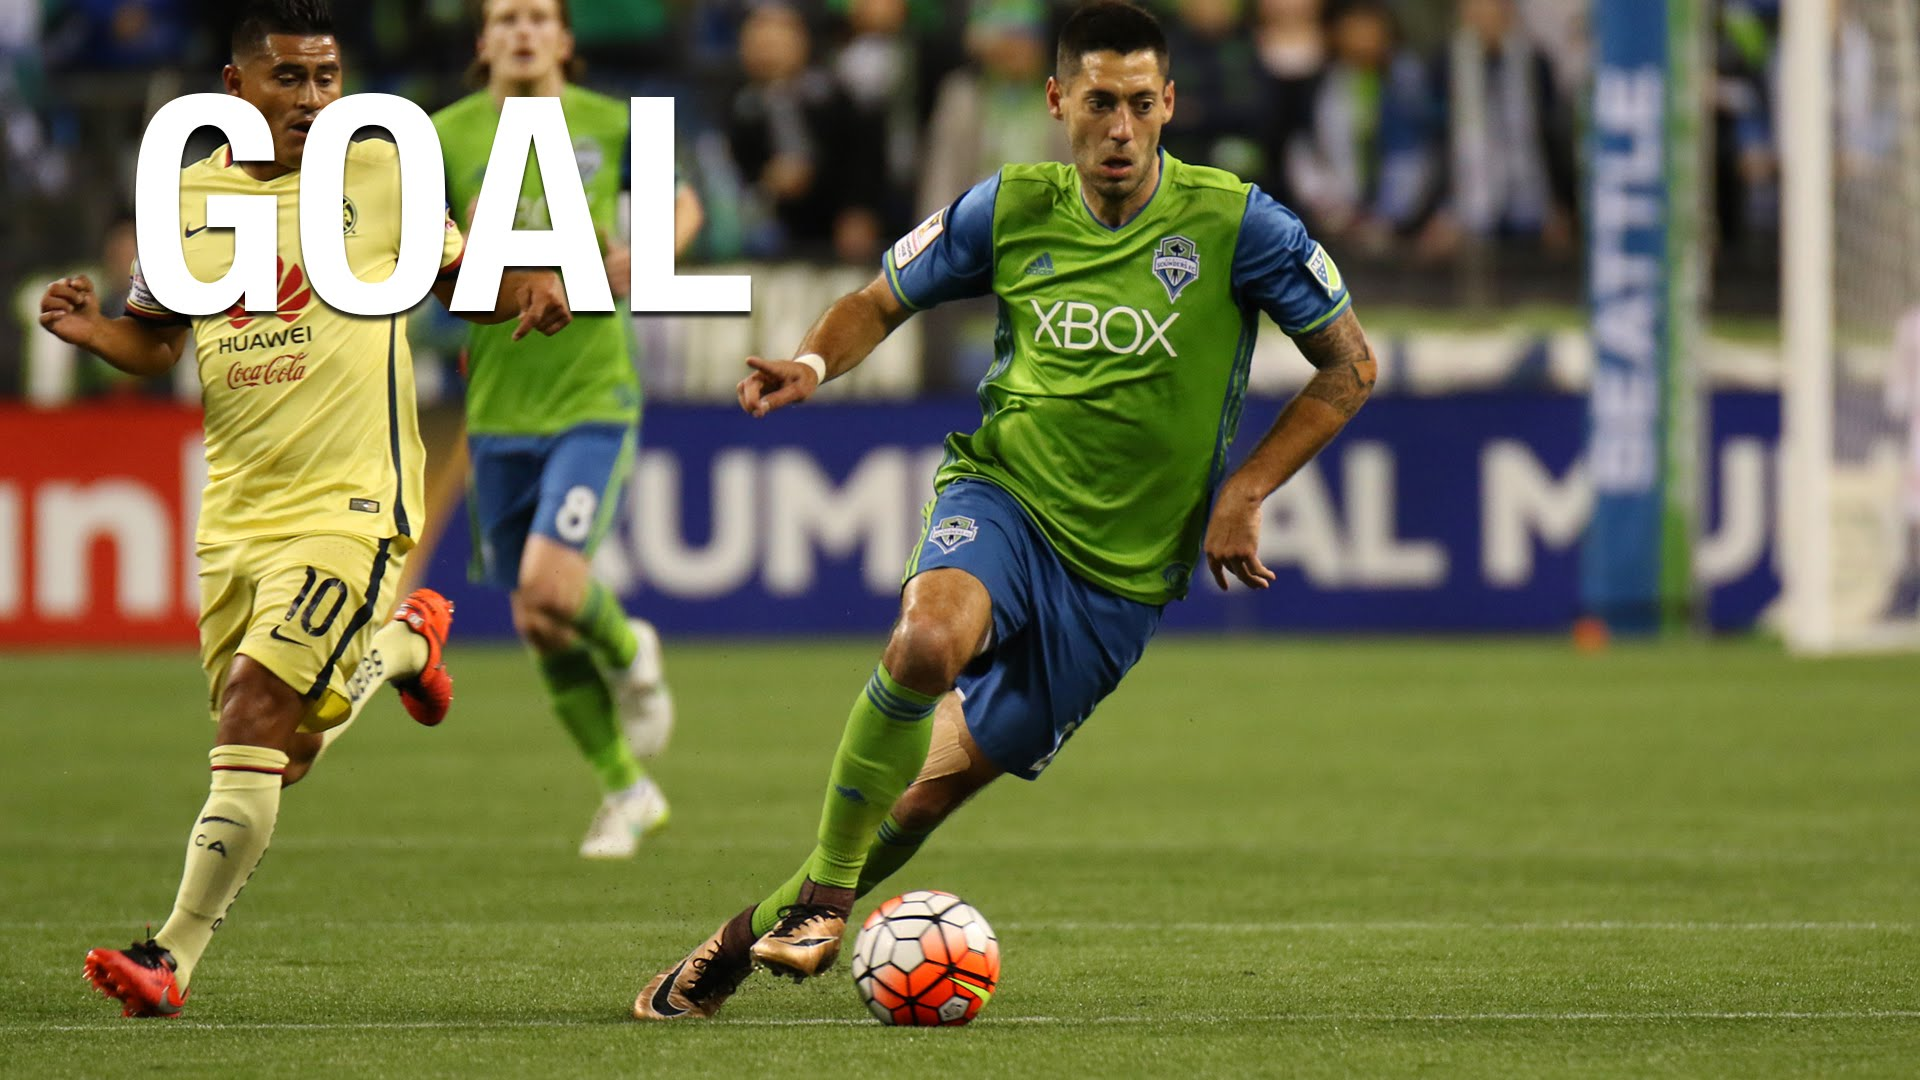 Clint Dempsey with a beautiful curving free kick goal